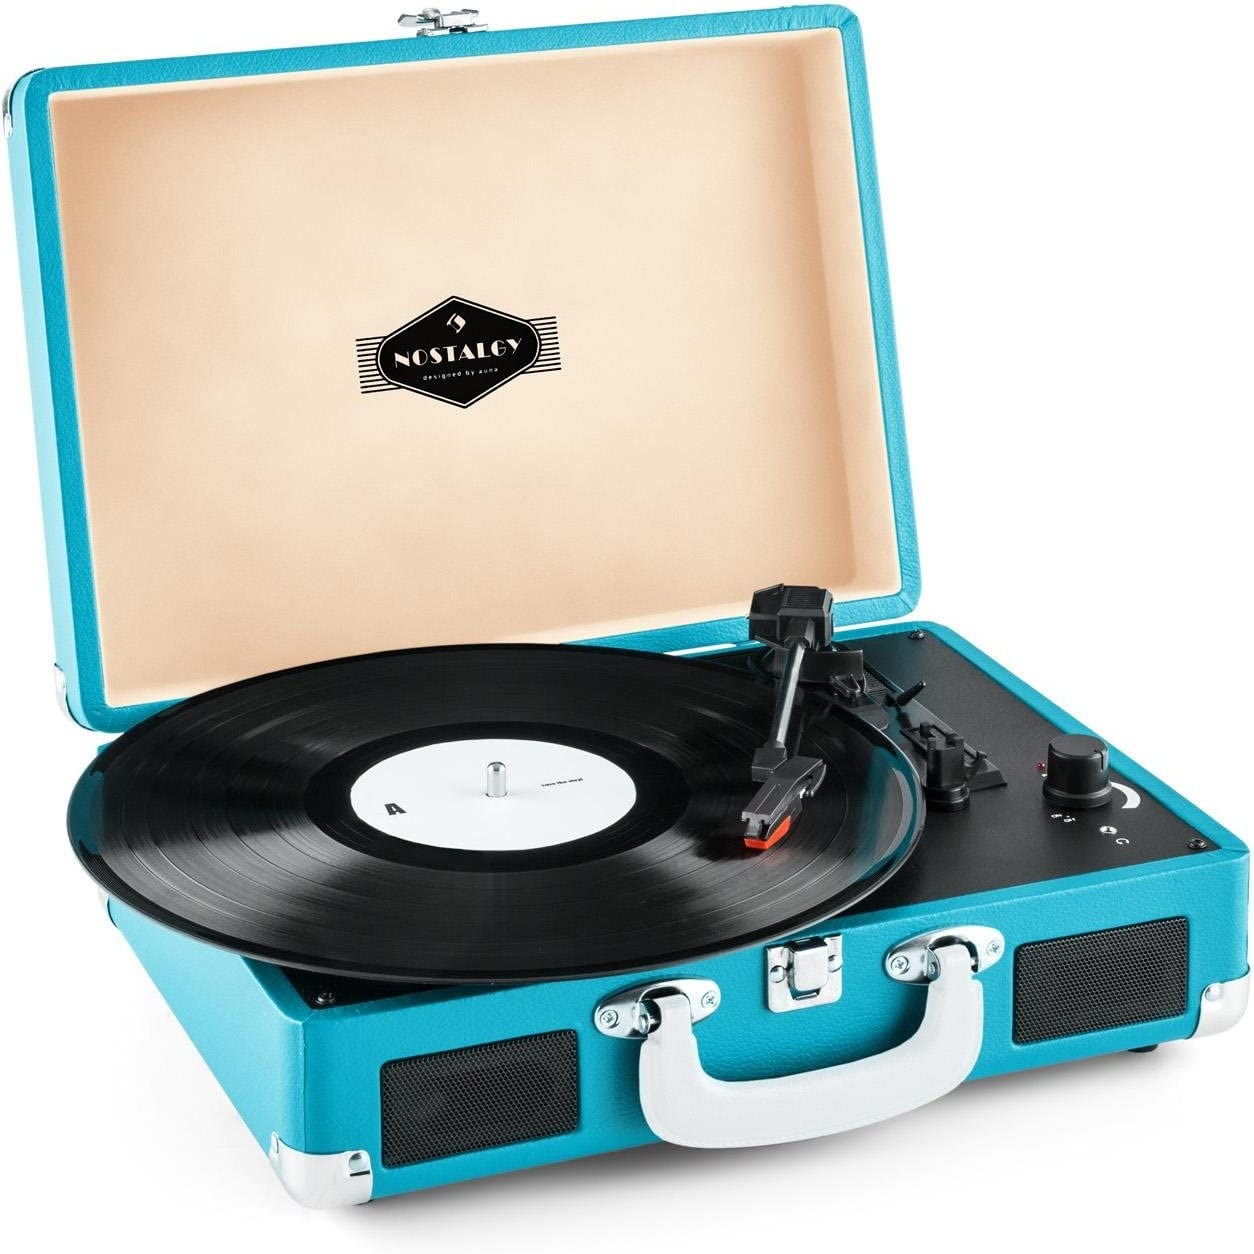 auna Peggy Sue Retro Record Player, Turntable with Built-in Stereo Speakers, Belt-Drive, USB-Port (B), Vinyl LP, Plays 33, 45 and 78 RPM Records, Digitization, Plug & Play, Portable Suitcase, Blue